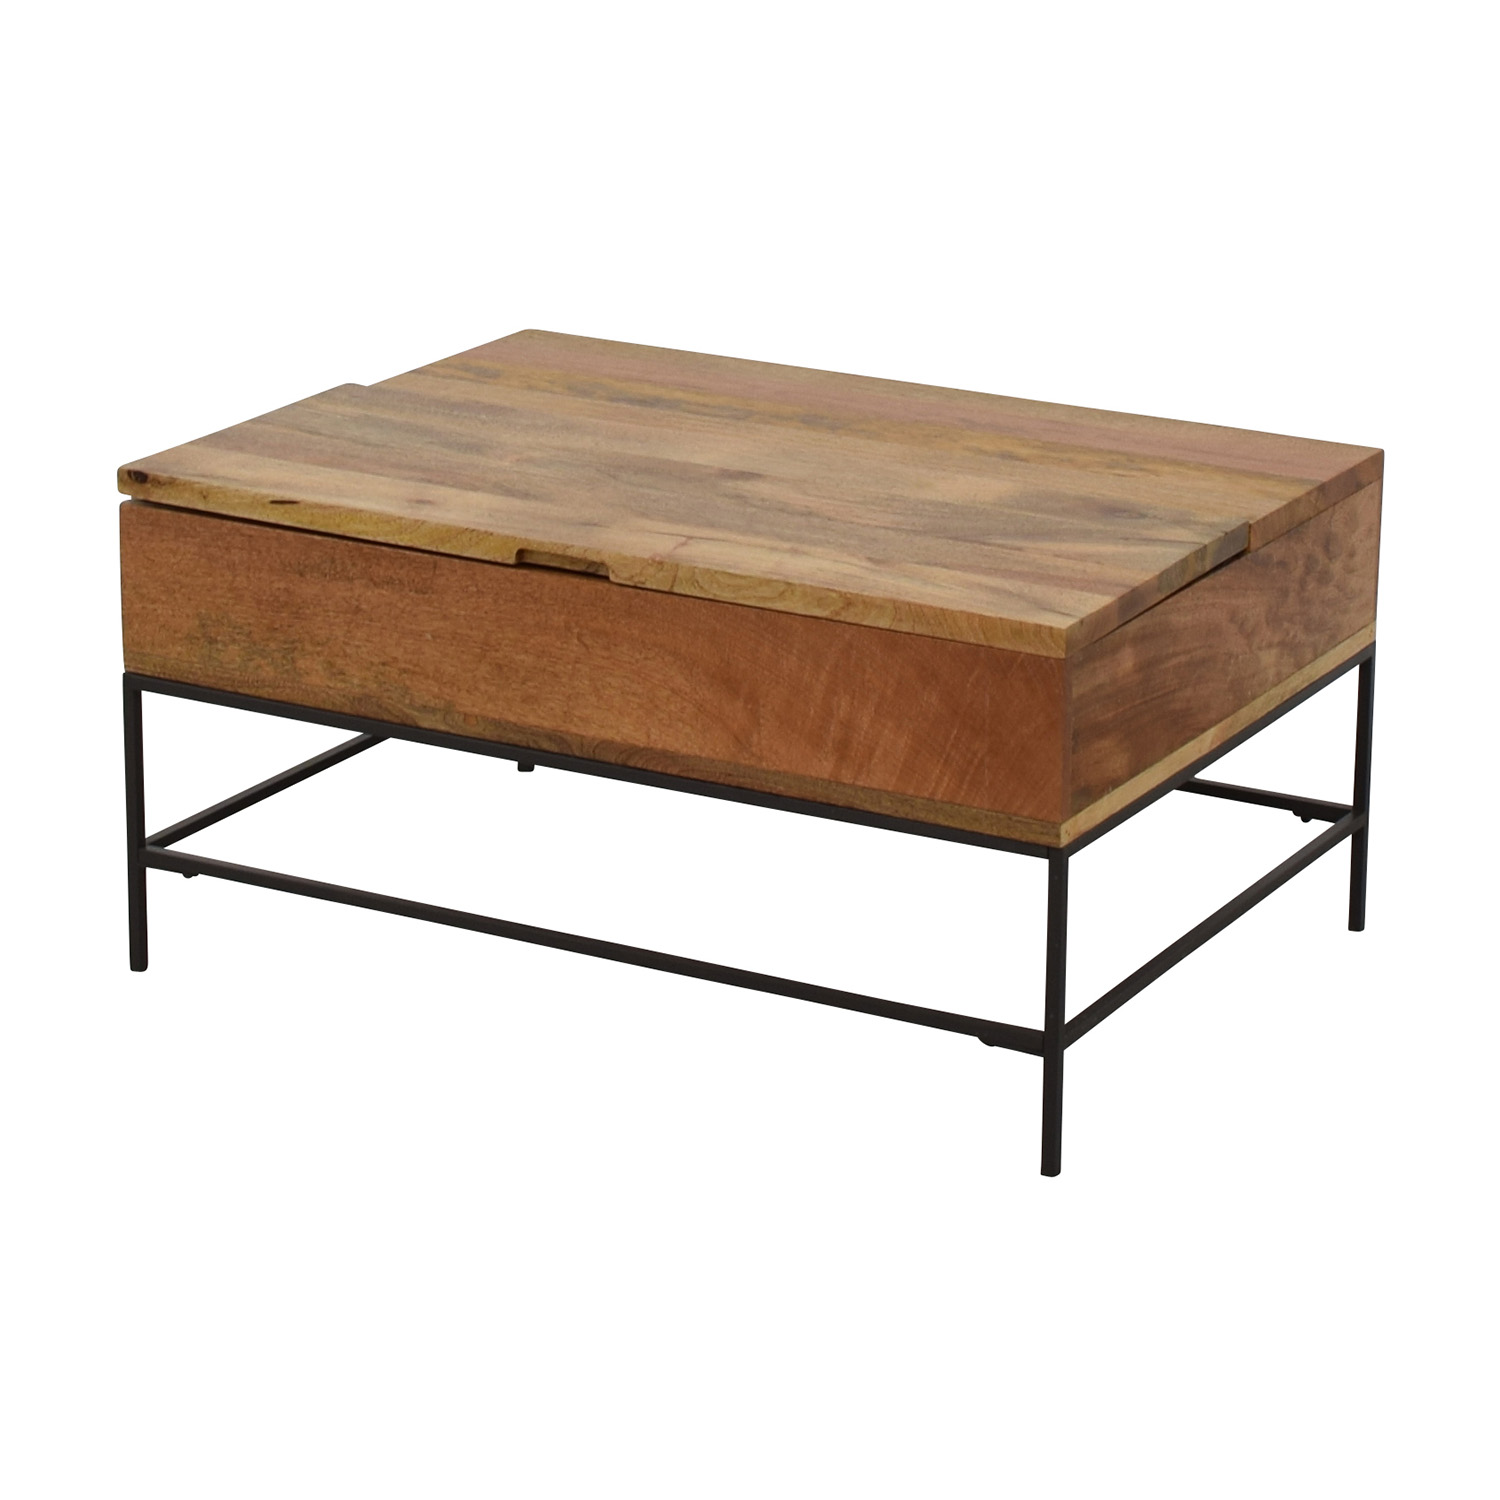 63 off west elm west elm industrial storage coffee for West elm coffee table sale